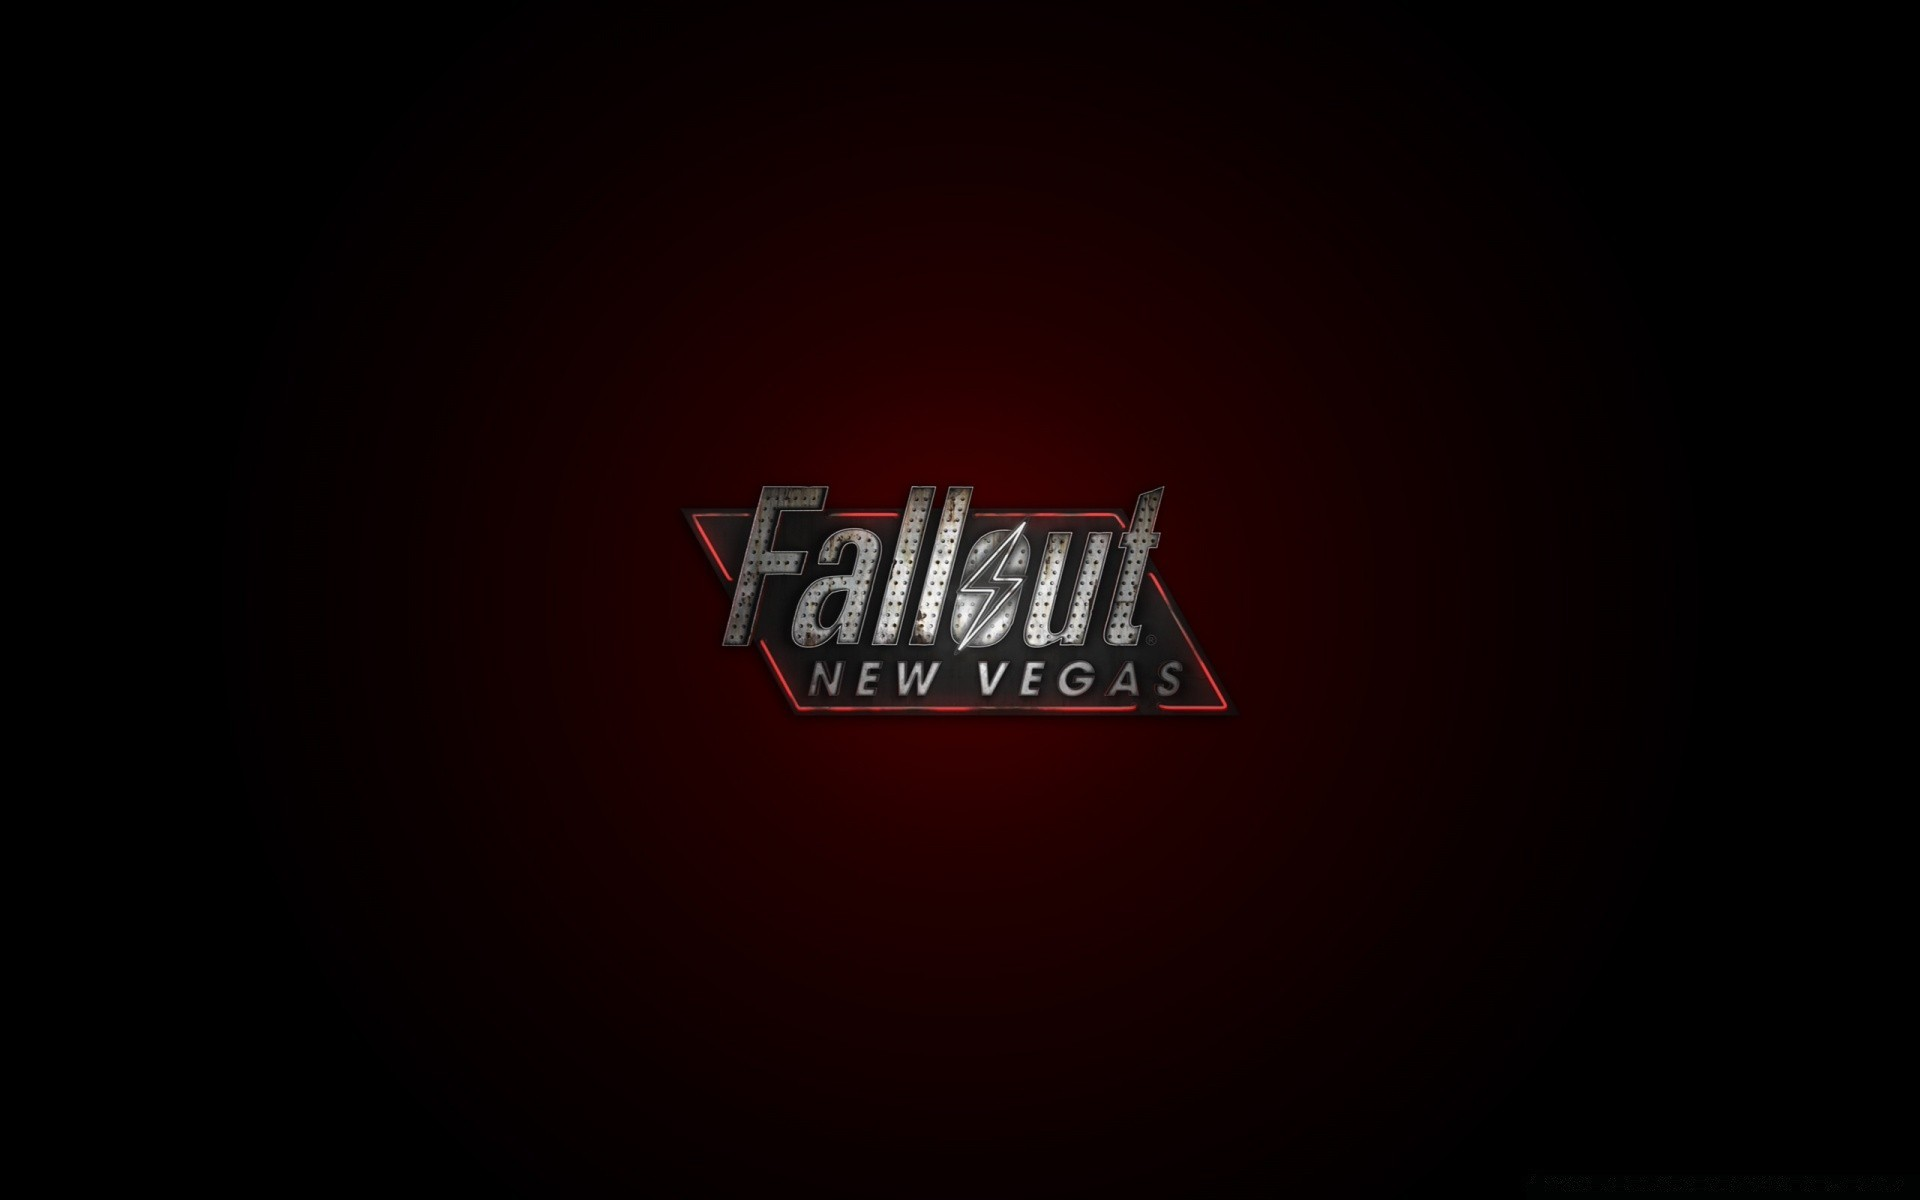 Fallout New Vegas Logo Red Phone Wallpapers